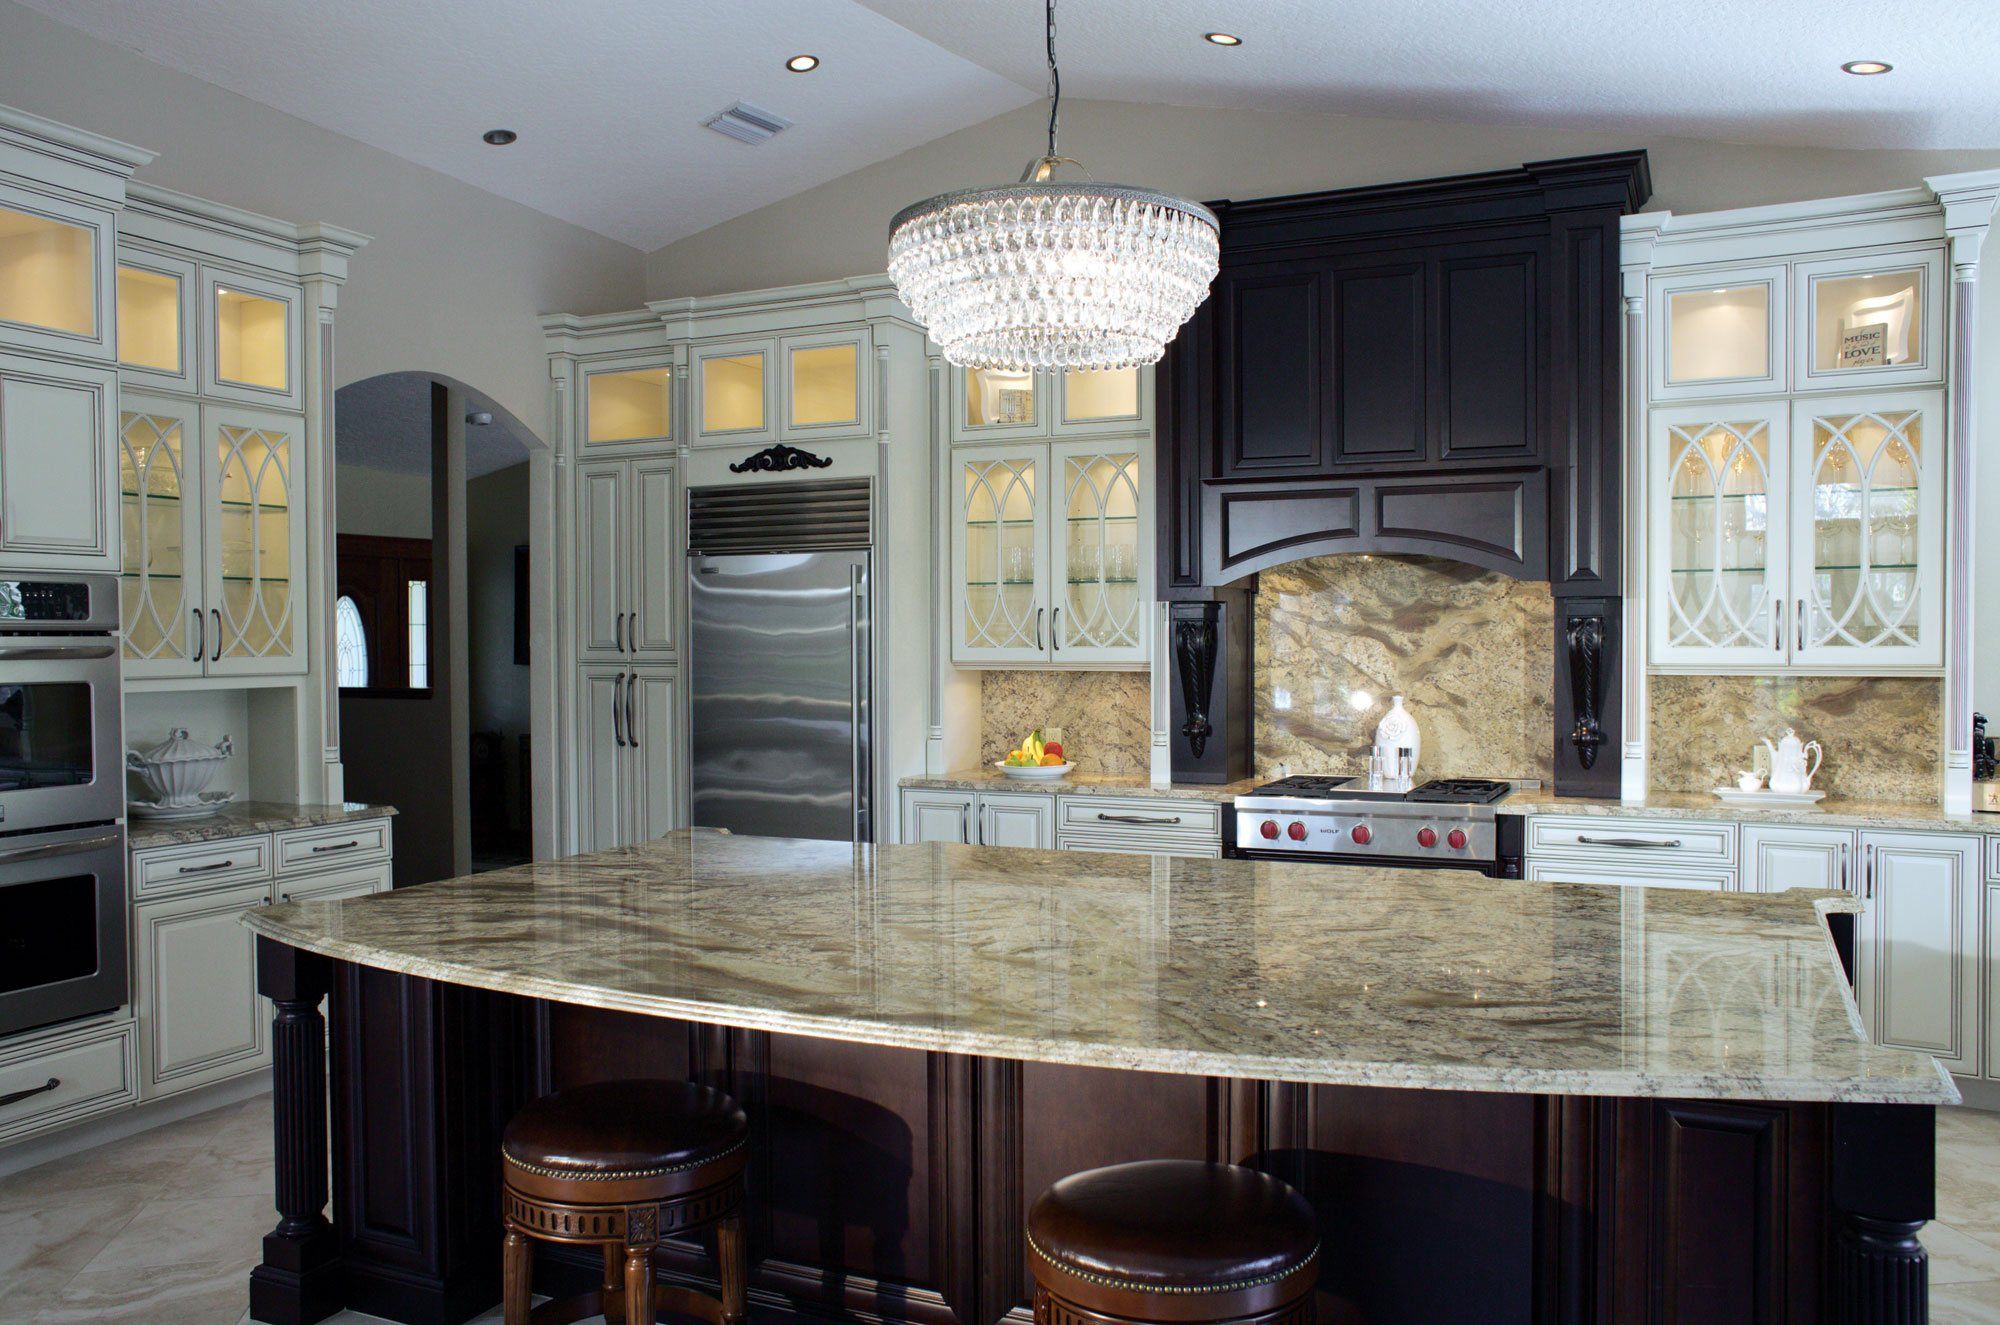 Kitchen Showrooms Online kitchen & bath remodel - custom cabinets melbourne florida